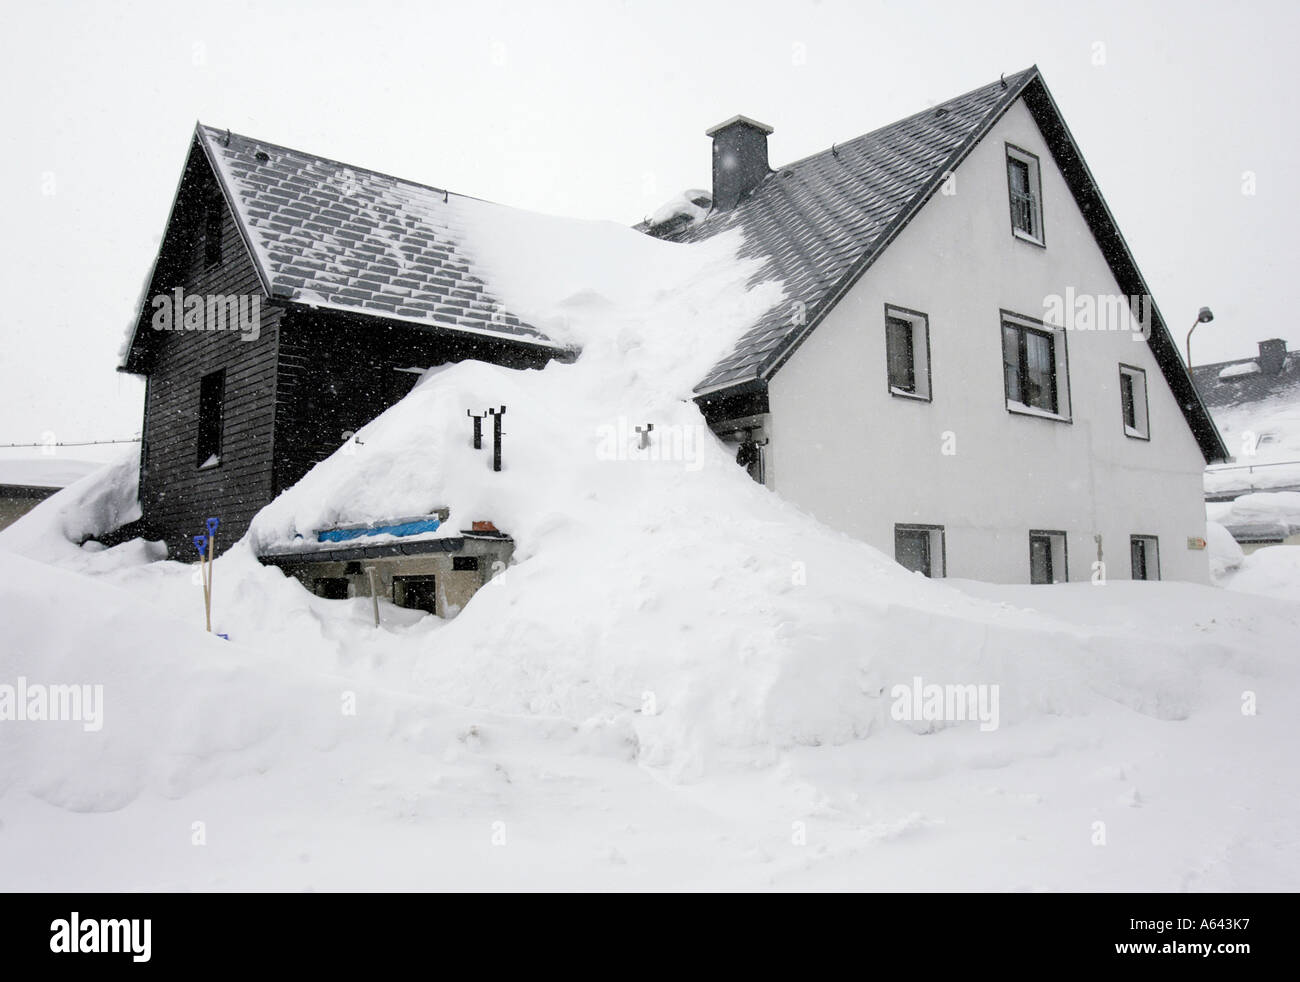 Snowed in apartment house in Oberwiesenthal, Erzgebirge, Erz Ore Mountains, Saxony, Germany - Stock Image